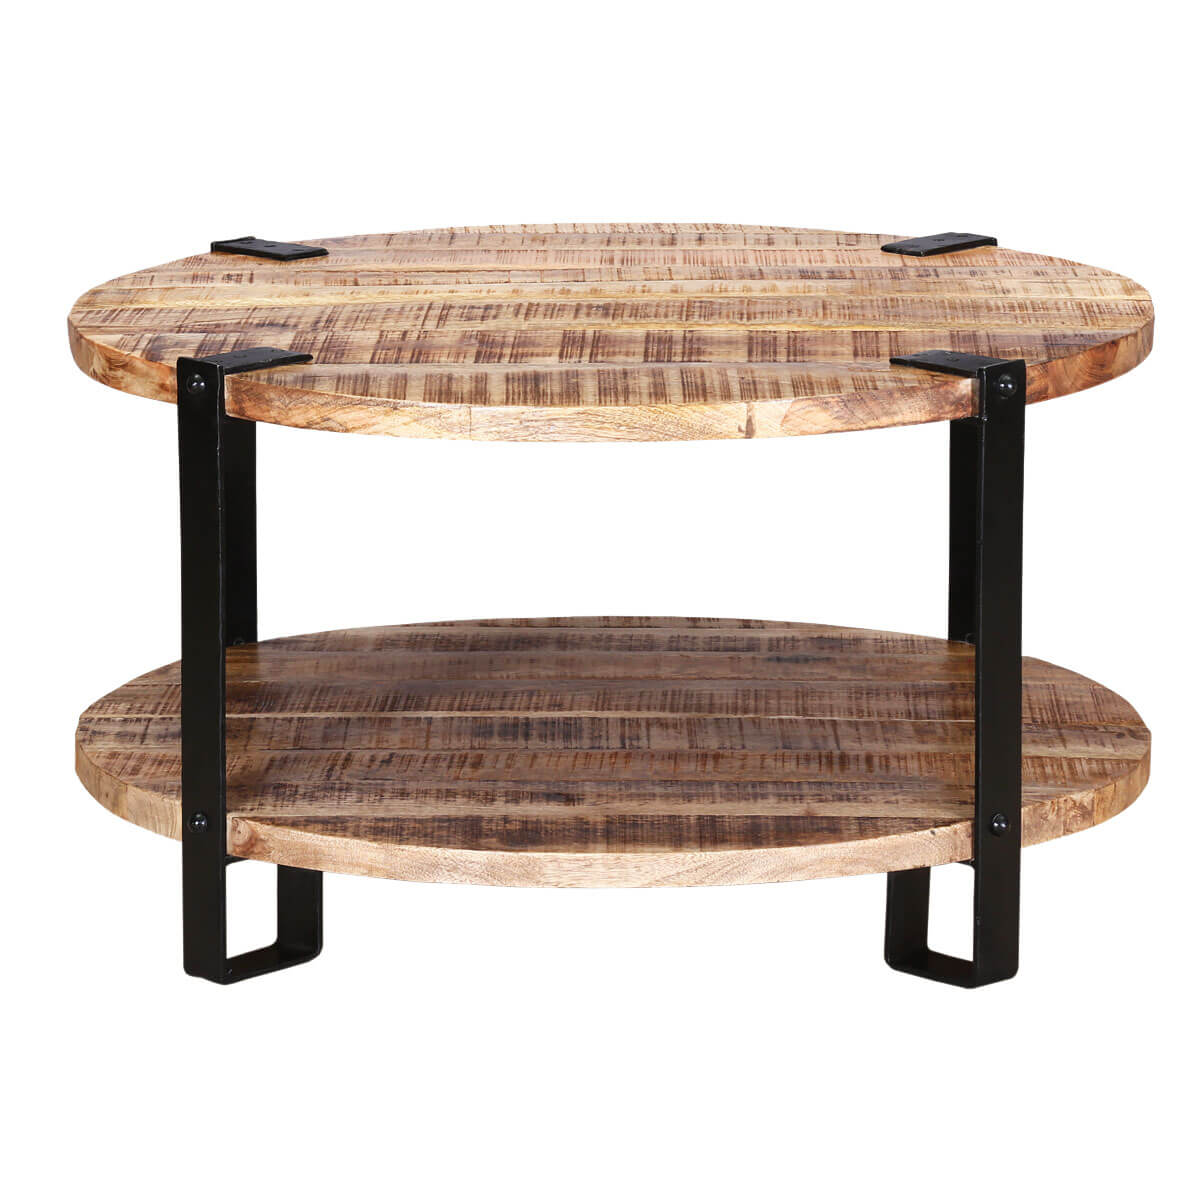 """35"""" Rustic Industrial Round Barn Coffee Table. Used Medical Exam Tables. Extra Long Dining Table Seats 12. Lap Desk With Mouse Tray. Countertop Storage Drawers. Vintage Desk Clock. Table For Two. Uits Help Desk. Red Desk Accessories"""